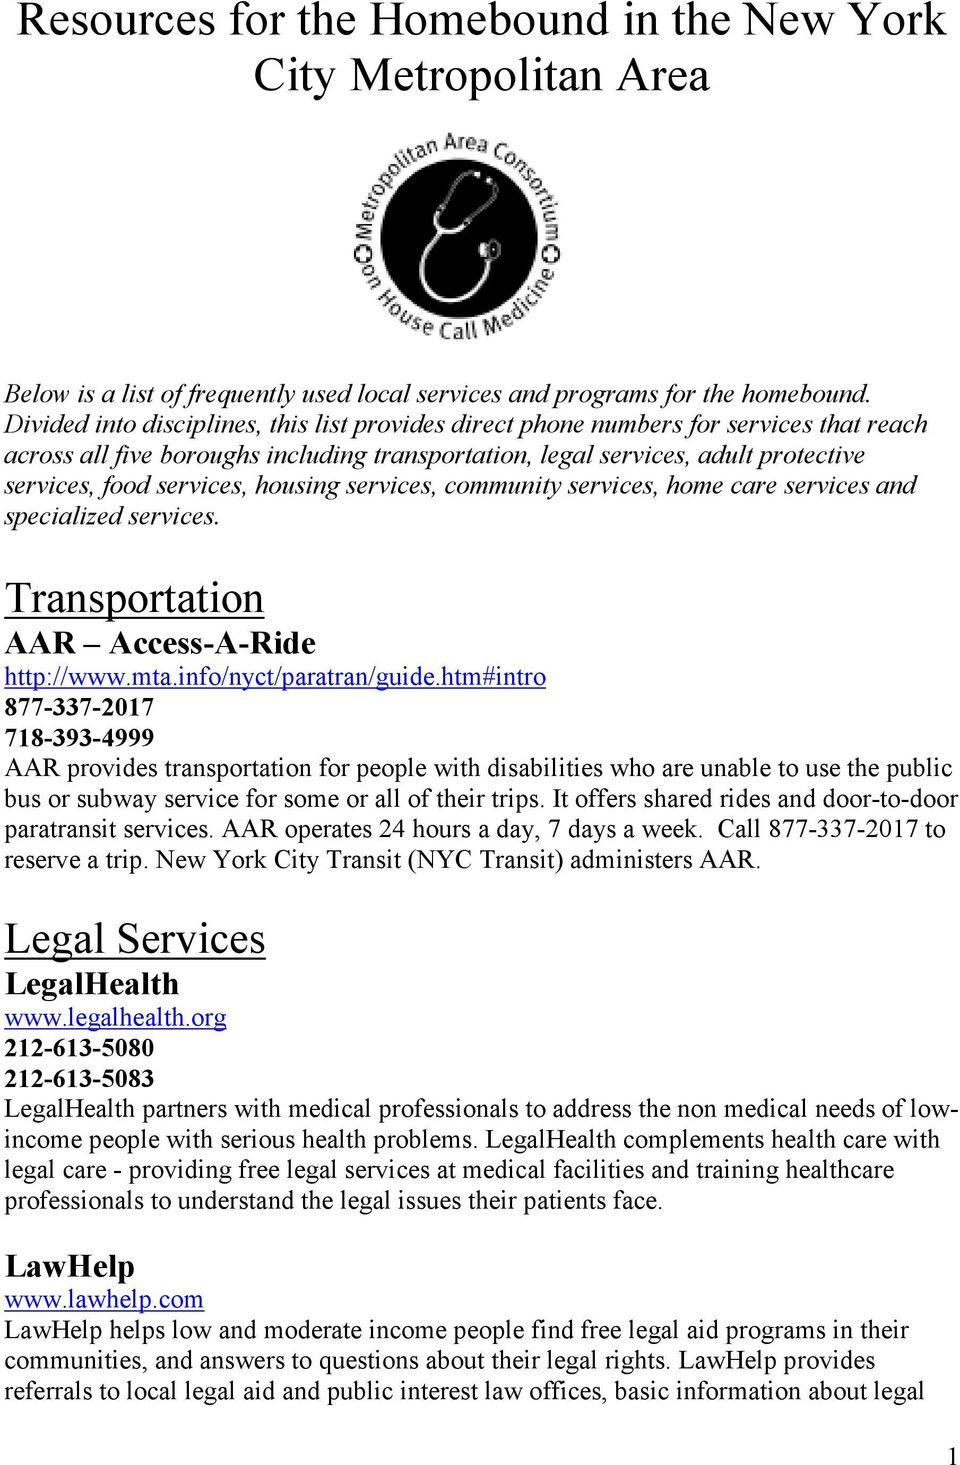 housing services, community services, home care services and specialized services. Transportation AAR Access-A-Ride http://www.mta.info/nyct/paratran/guide.